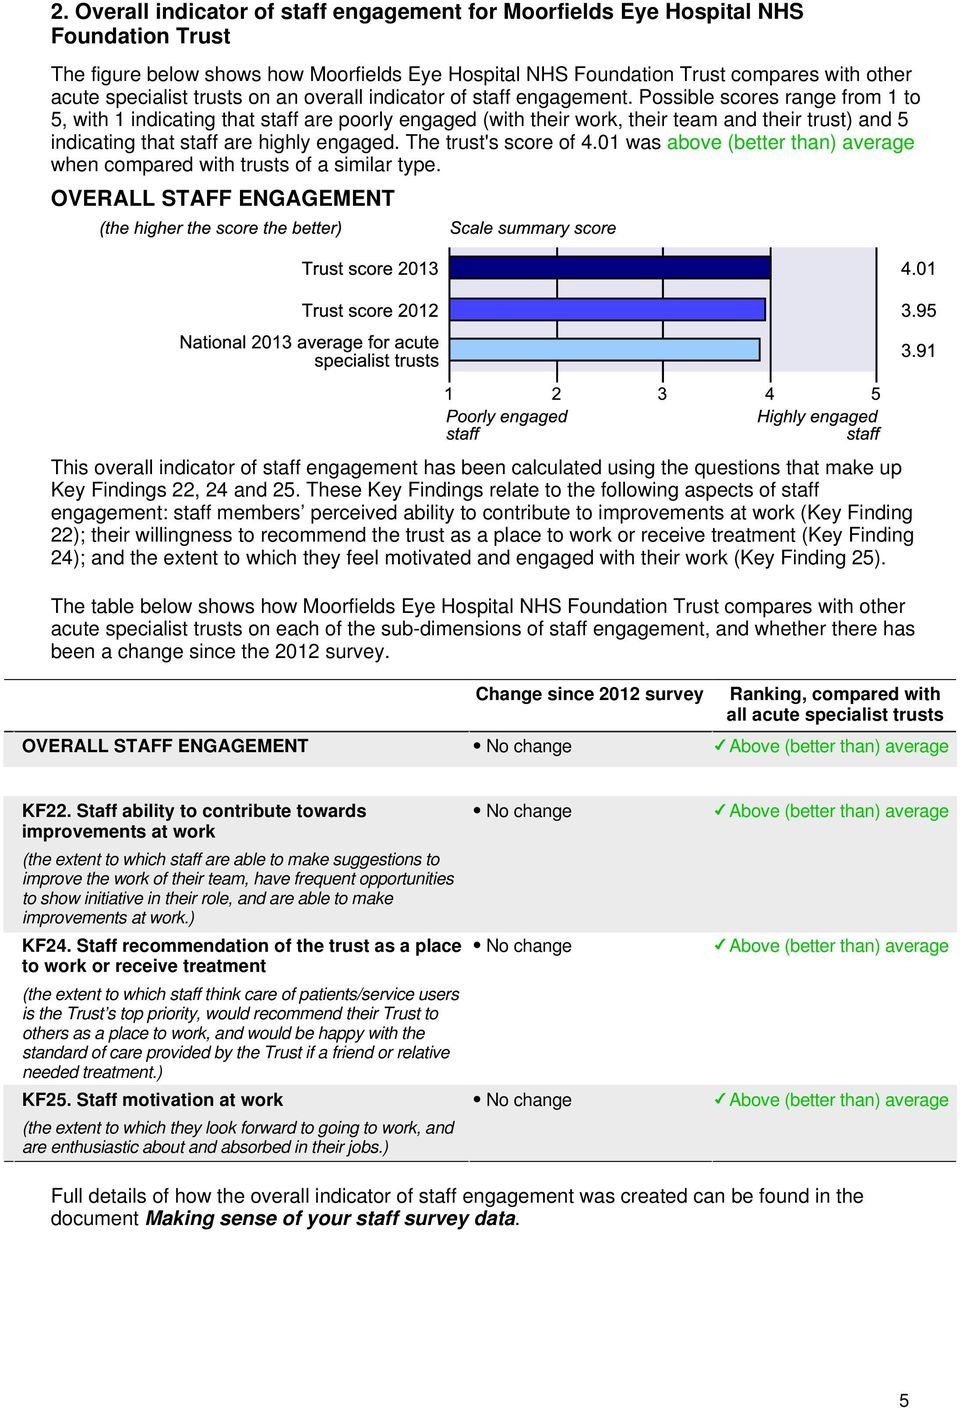 Possible scores range from 1 to 5, with 1 indicating that staff are poorly engaged (with their work, their team and their trust) and 5 indicating that staff are highly engaged. The trust's score of 4.